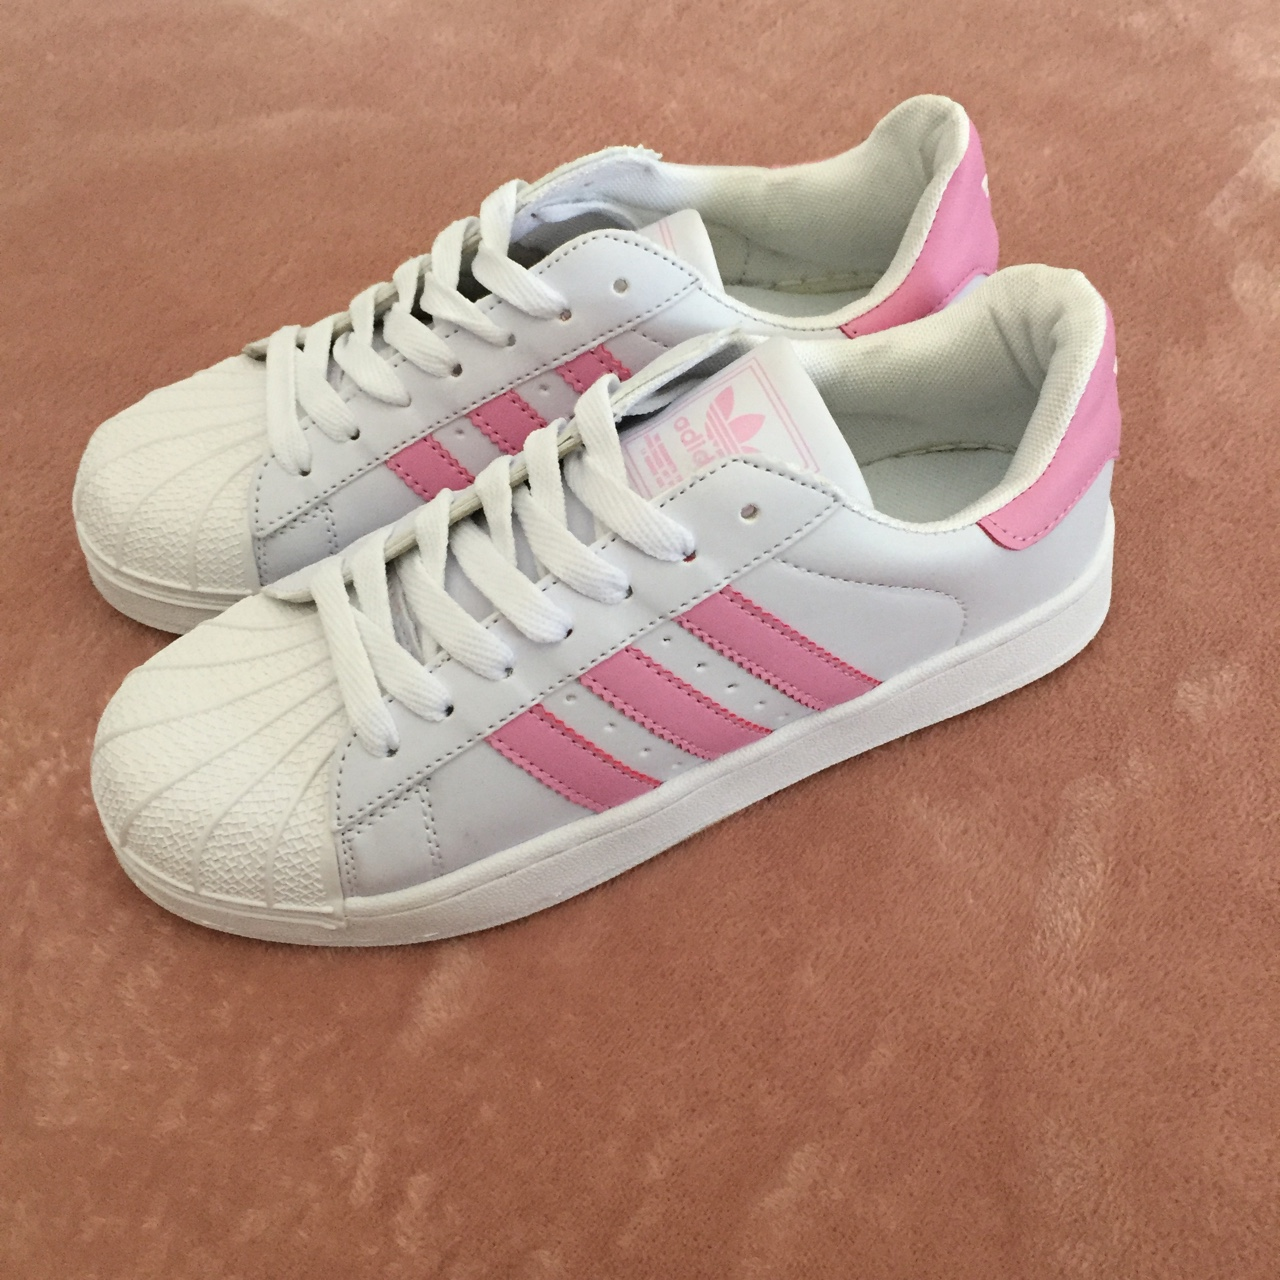 FAKE adidas originals with baby pink details ?? HOW Depop